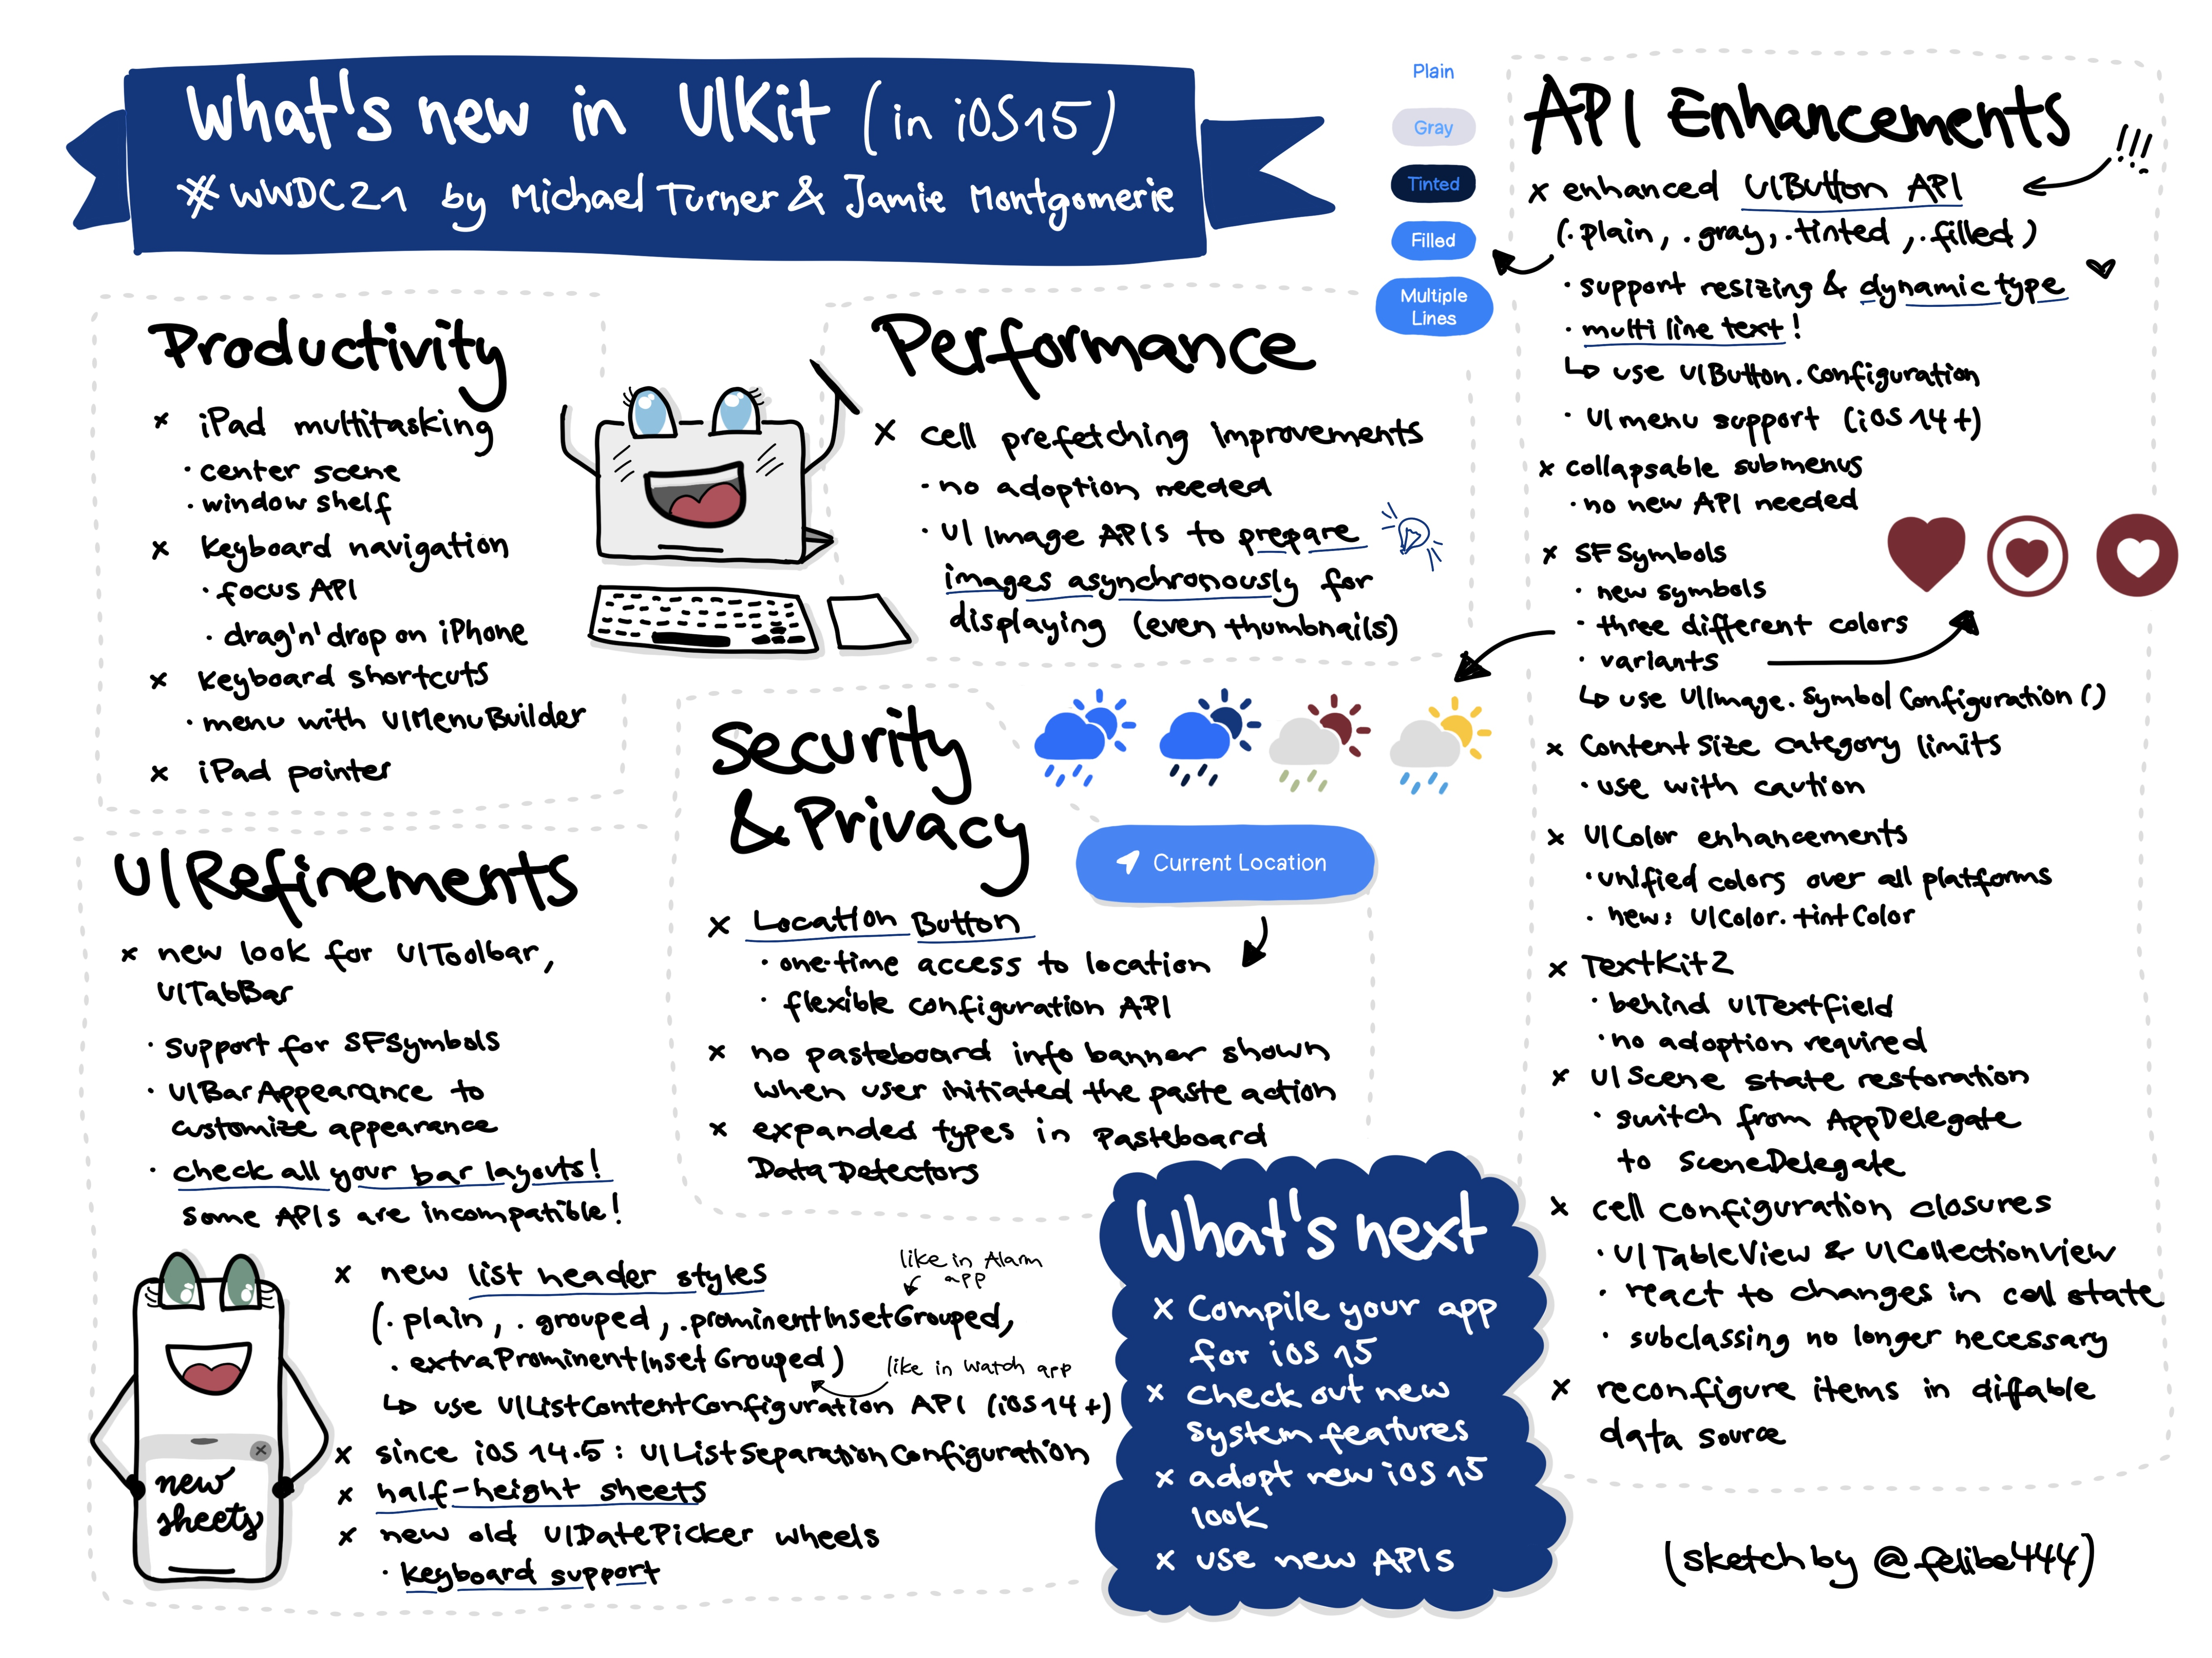 Sketchnote about what's new in UIKit at WWDC21 about improvements in productivity, UI refinements, performance, API Enhancements and security and privacy changes. My favorite changes are new half height sheets, new UIButton API and the system location button for one-time access to locations.